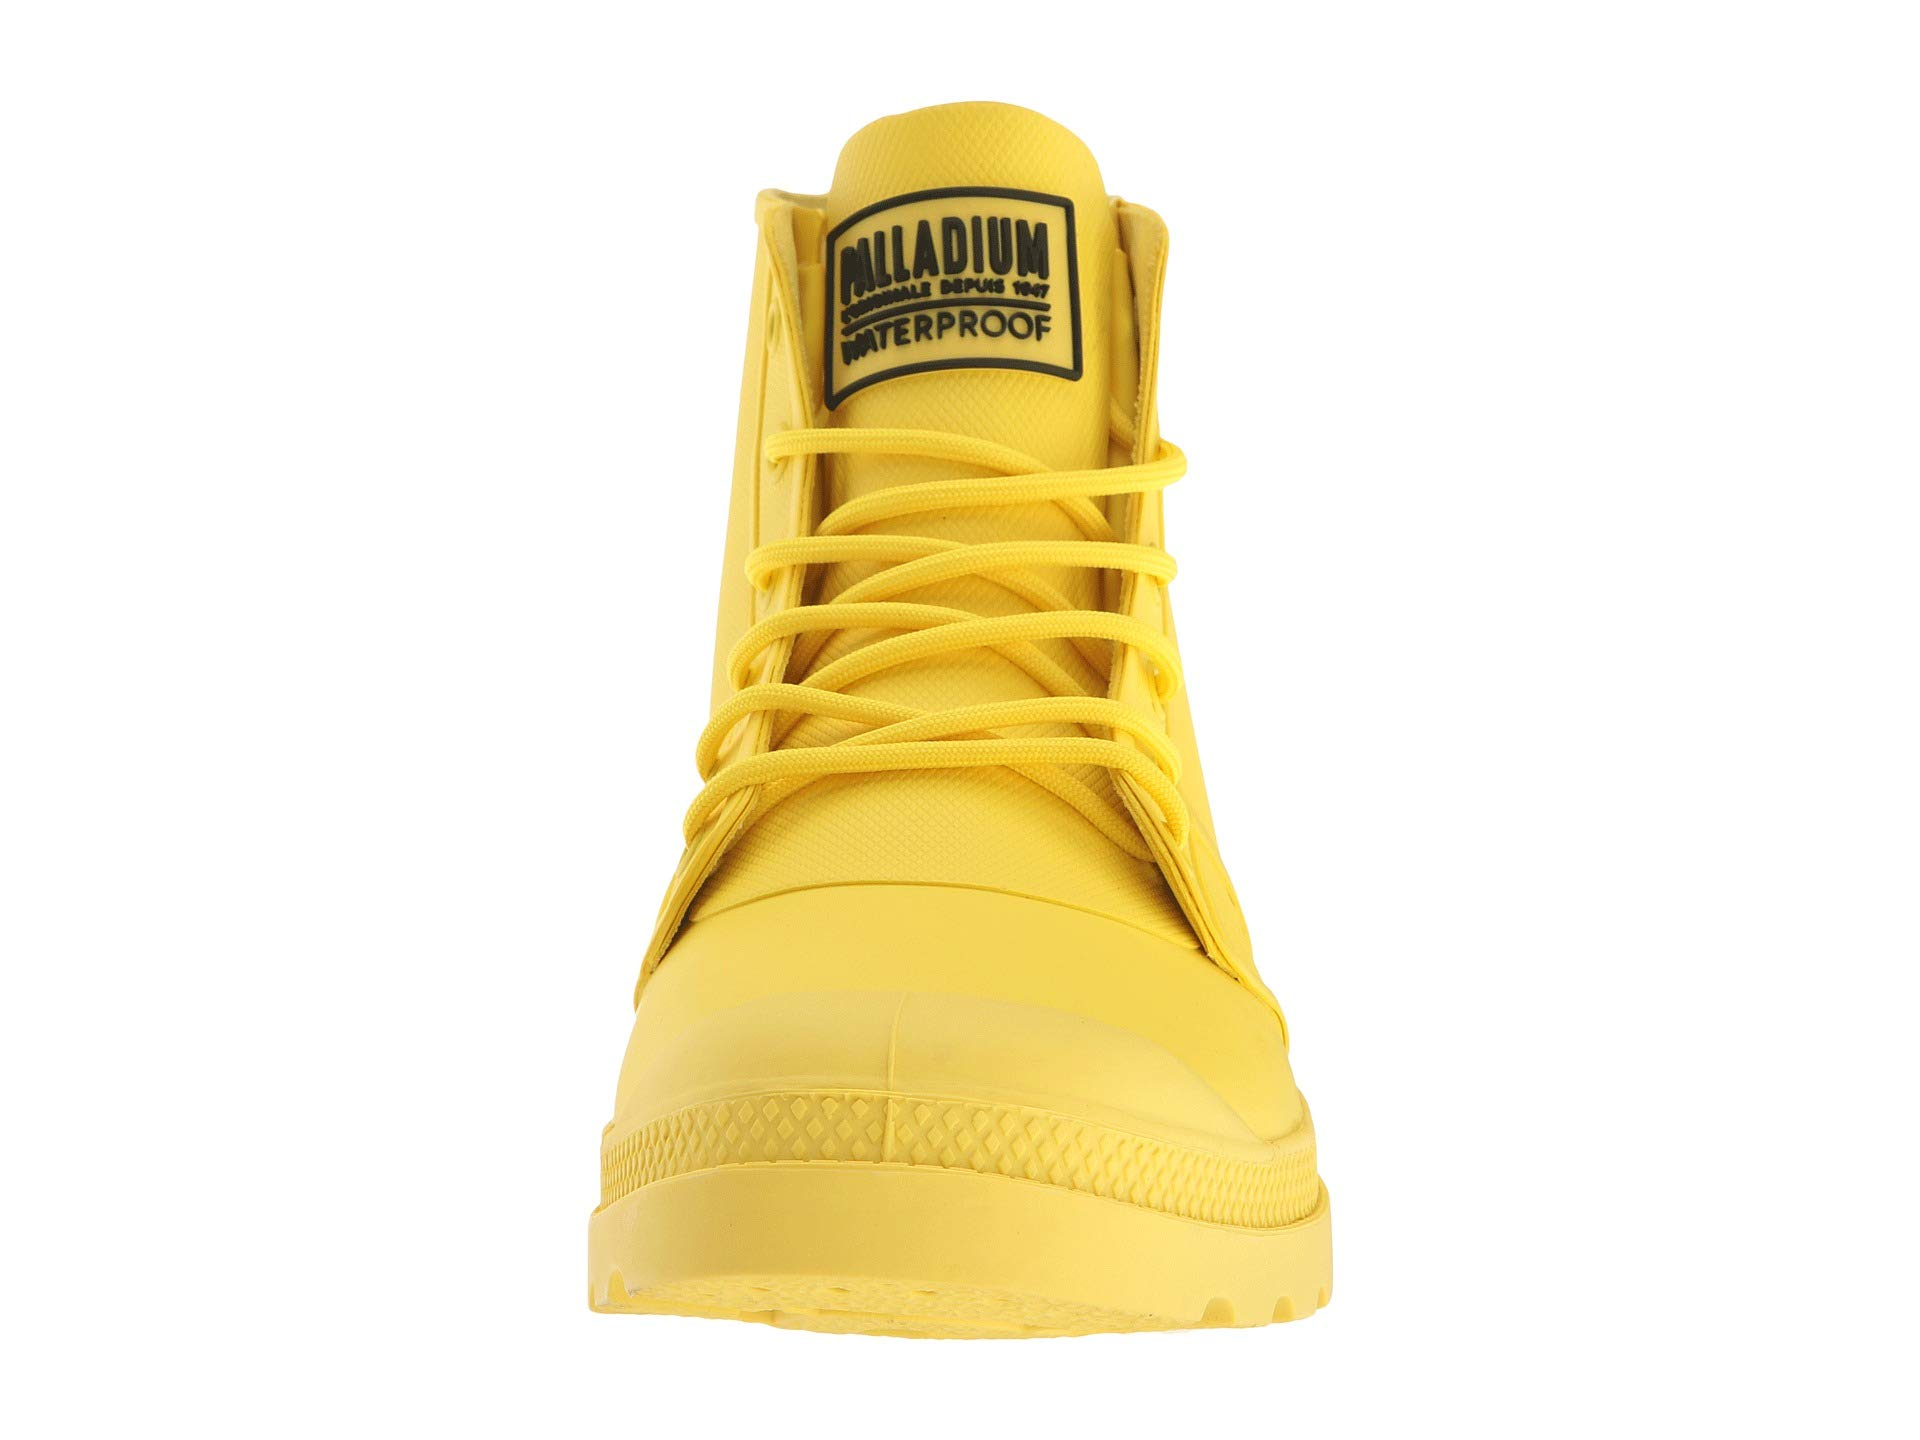 Smiley Pampa Waterproof Palladium Yellow Blazing Rain 0wqgUpxA